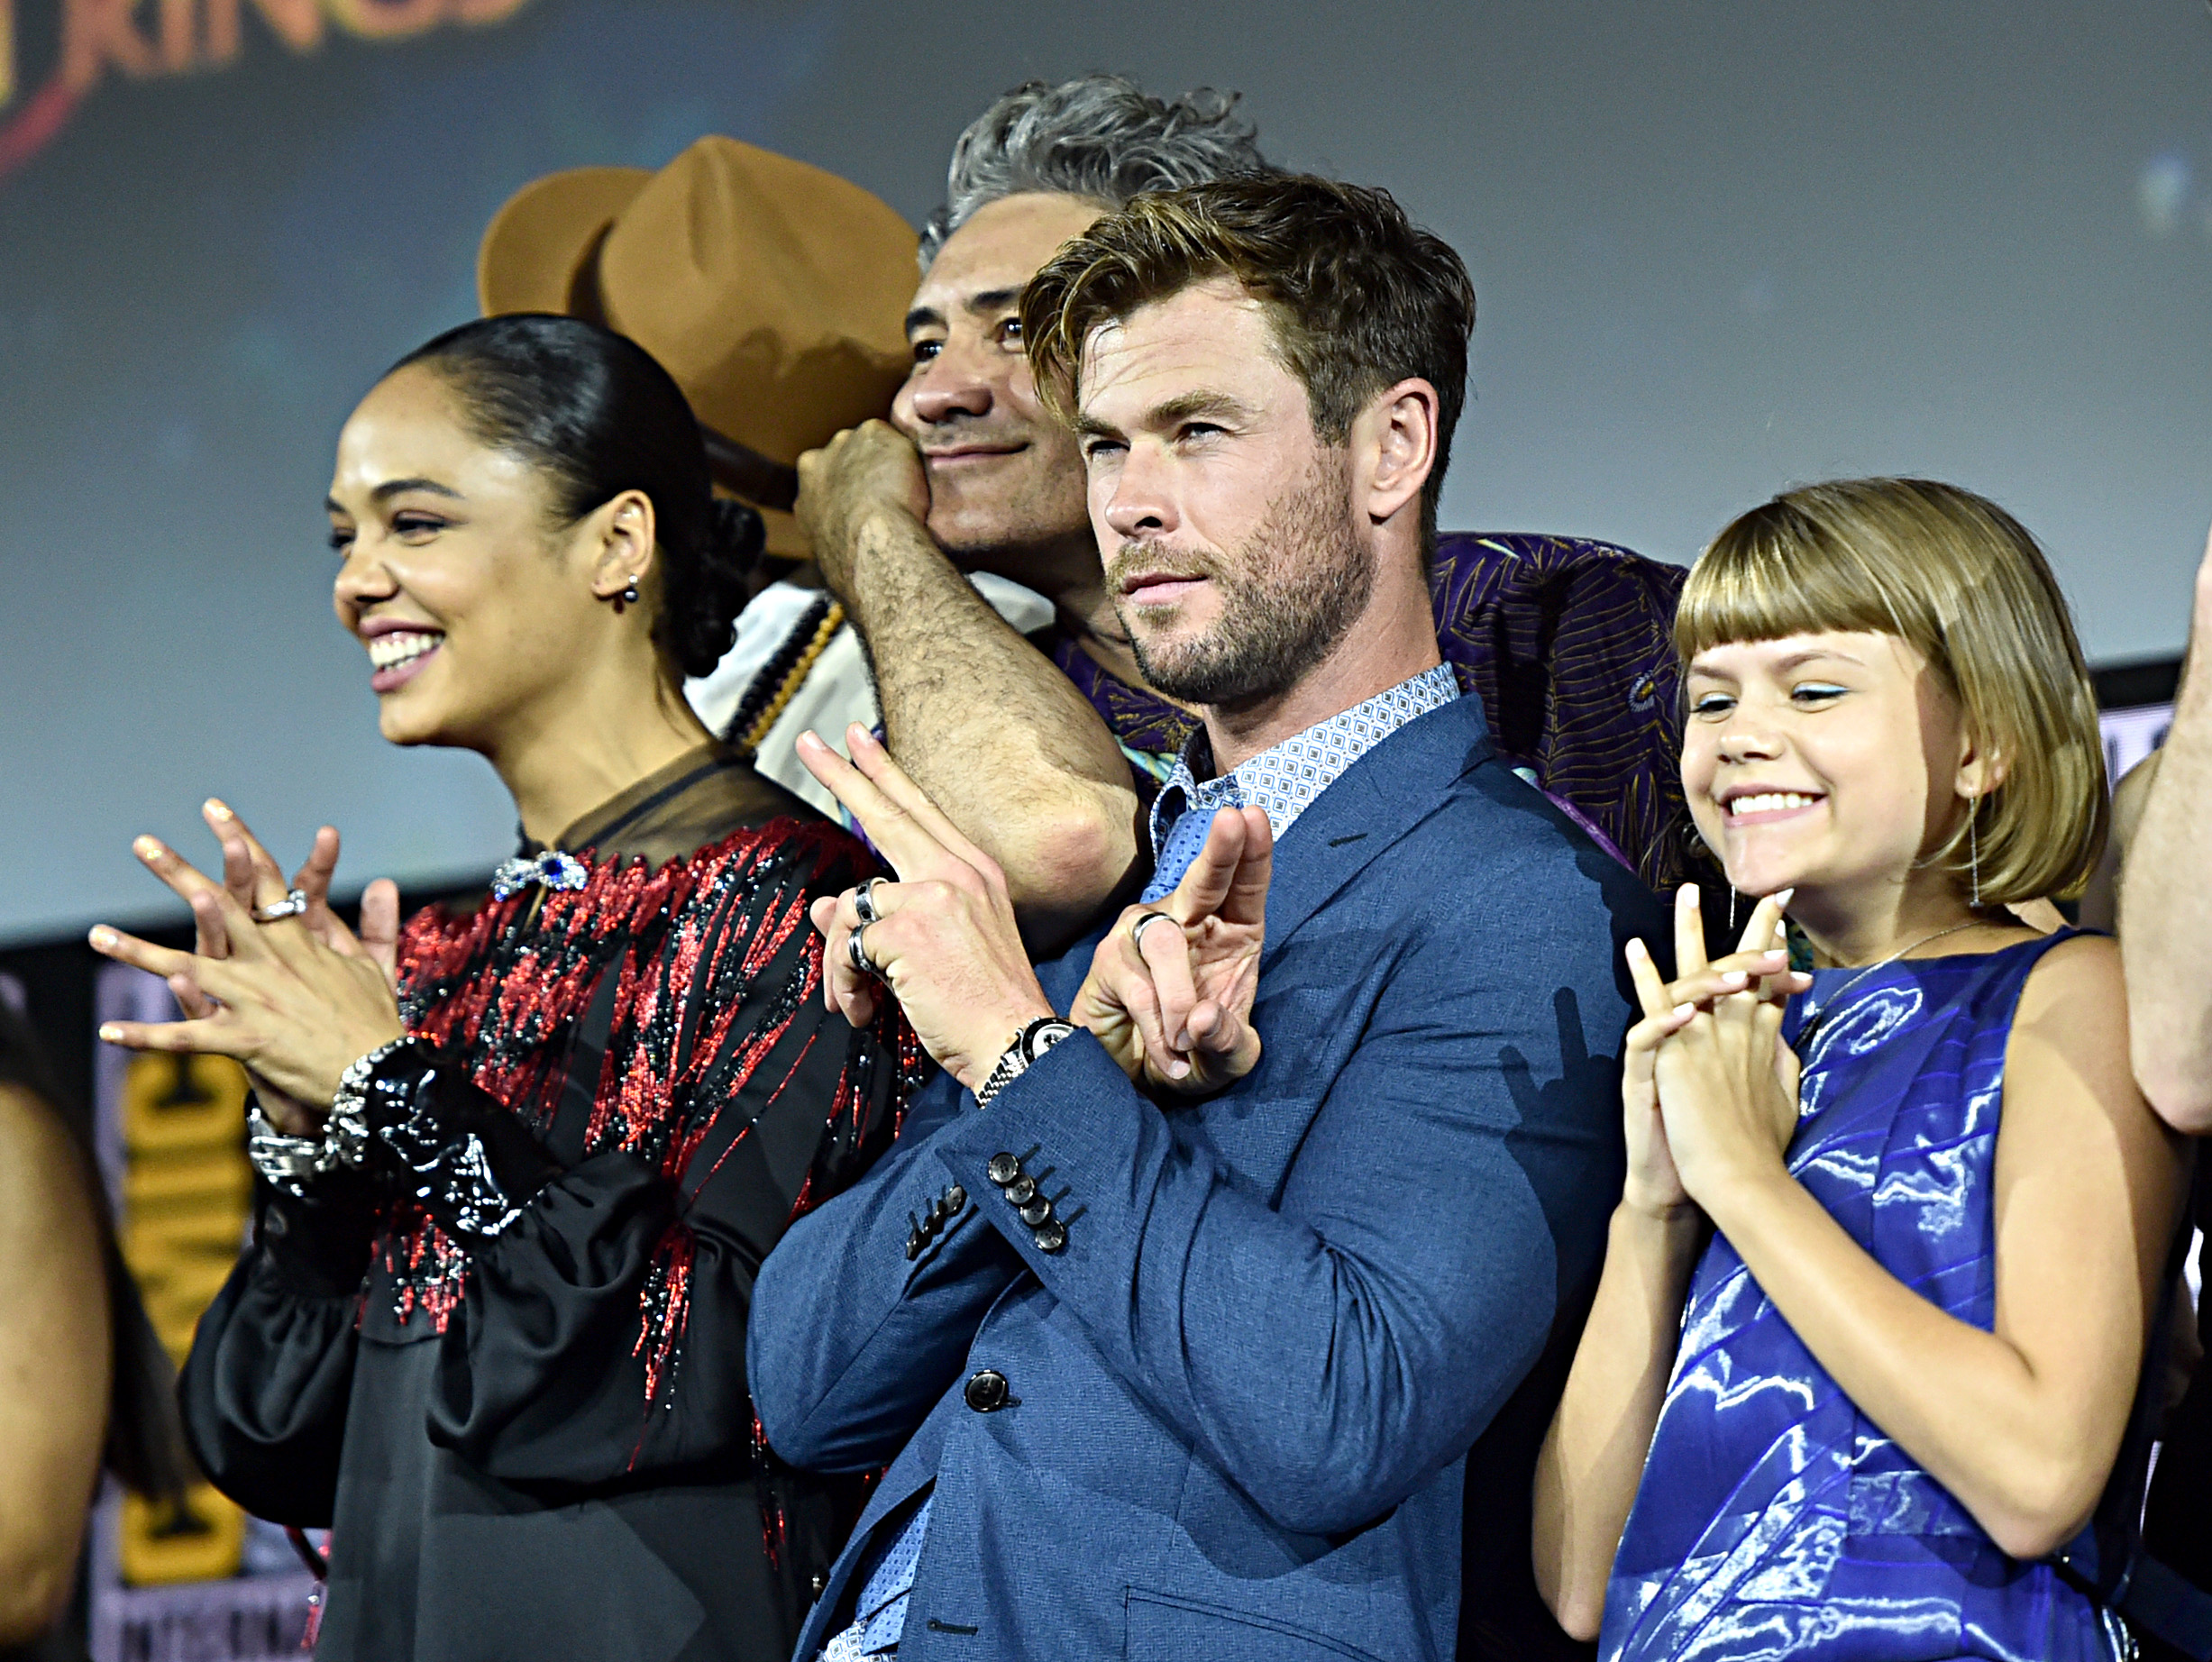 Love and Thunder's cast at San Diego Comic-Con International 2019